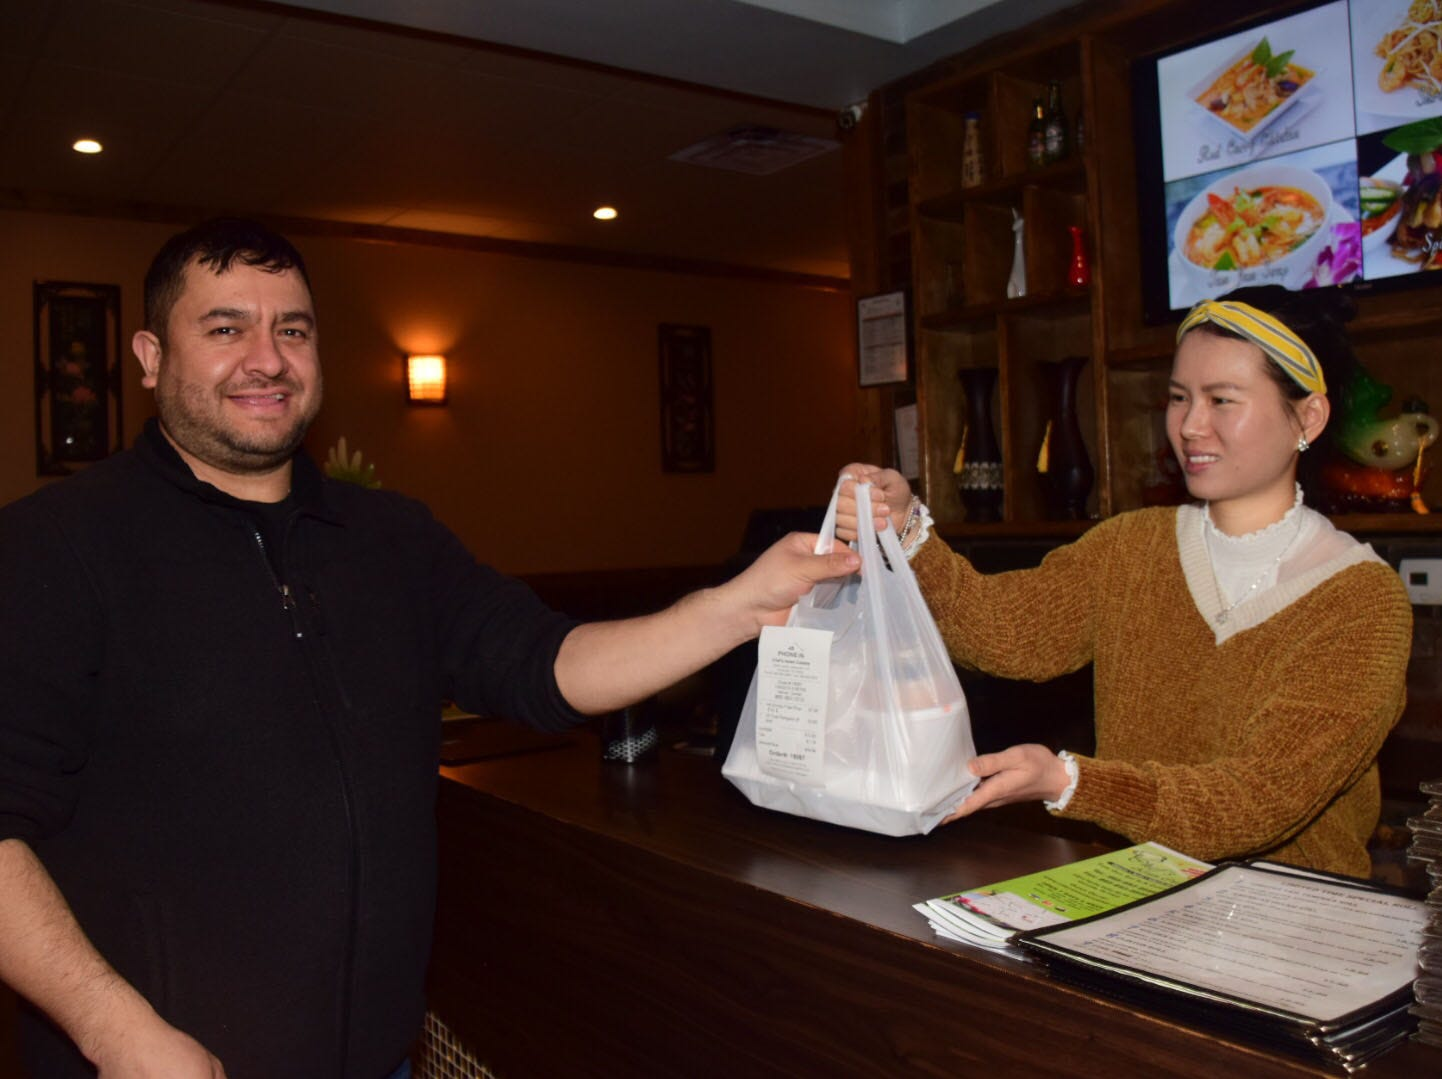 Elmer Perez picks up his lunch from co-owner Echo Liang at Chef's Asian Cuisine Thursday, Jan. 24.